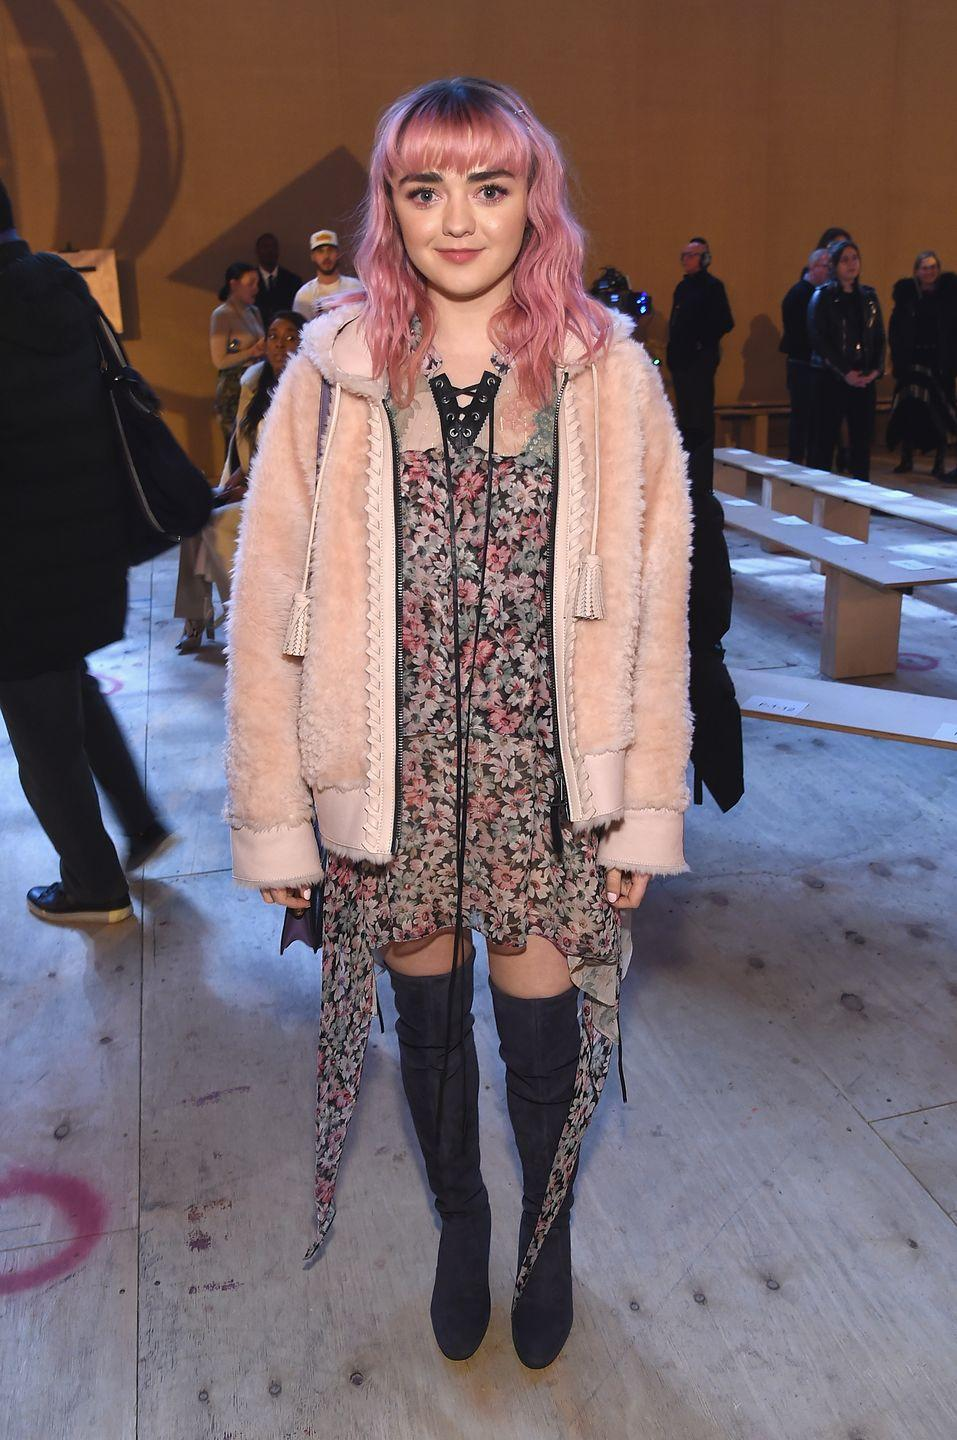 <p>2019 was the year of the sherpa jacket. 2021 will bring brighter colors and trendier styles. This fluffy, bear-like jacket is a fall must. Throw it over a summer dress or layer up with a turtleneck and bell bottoms. <br><br></p>